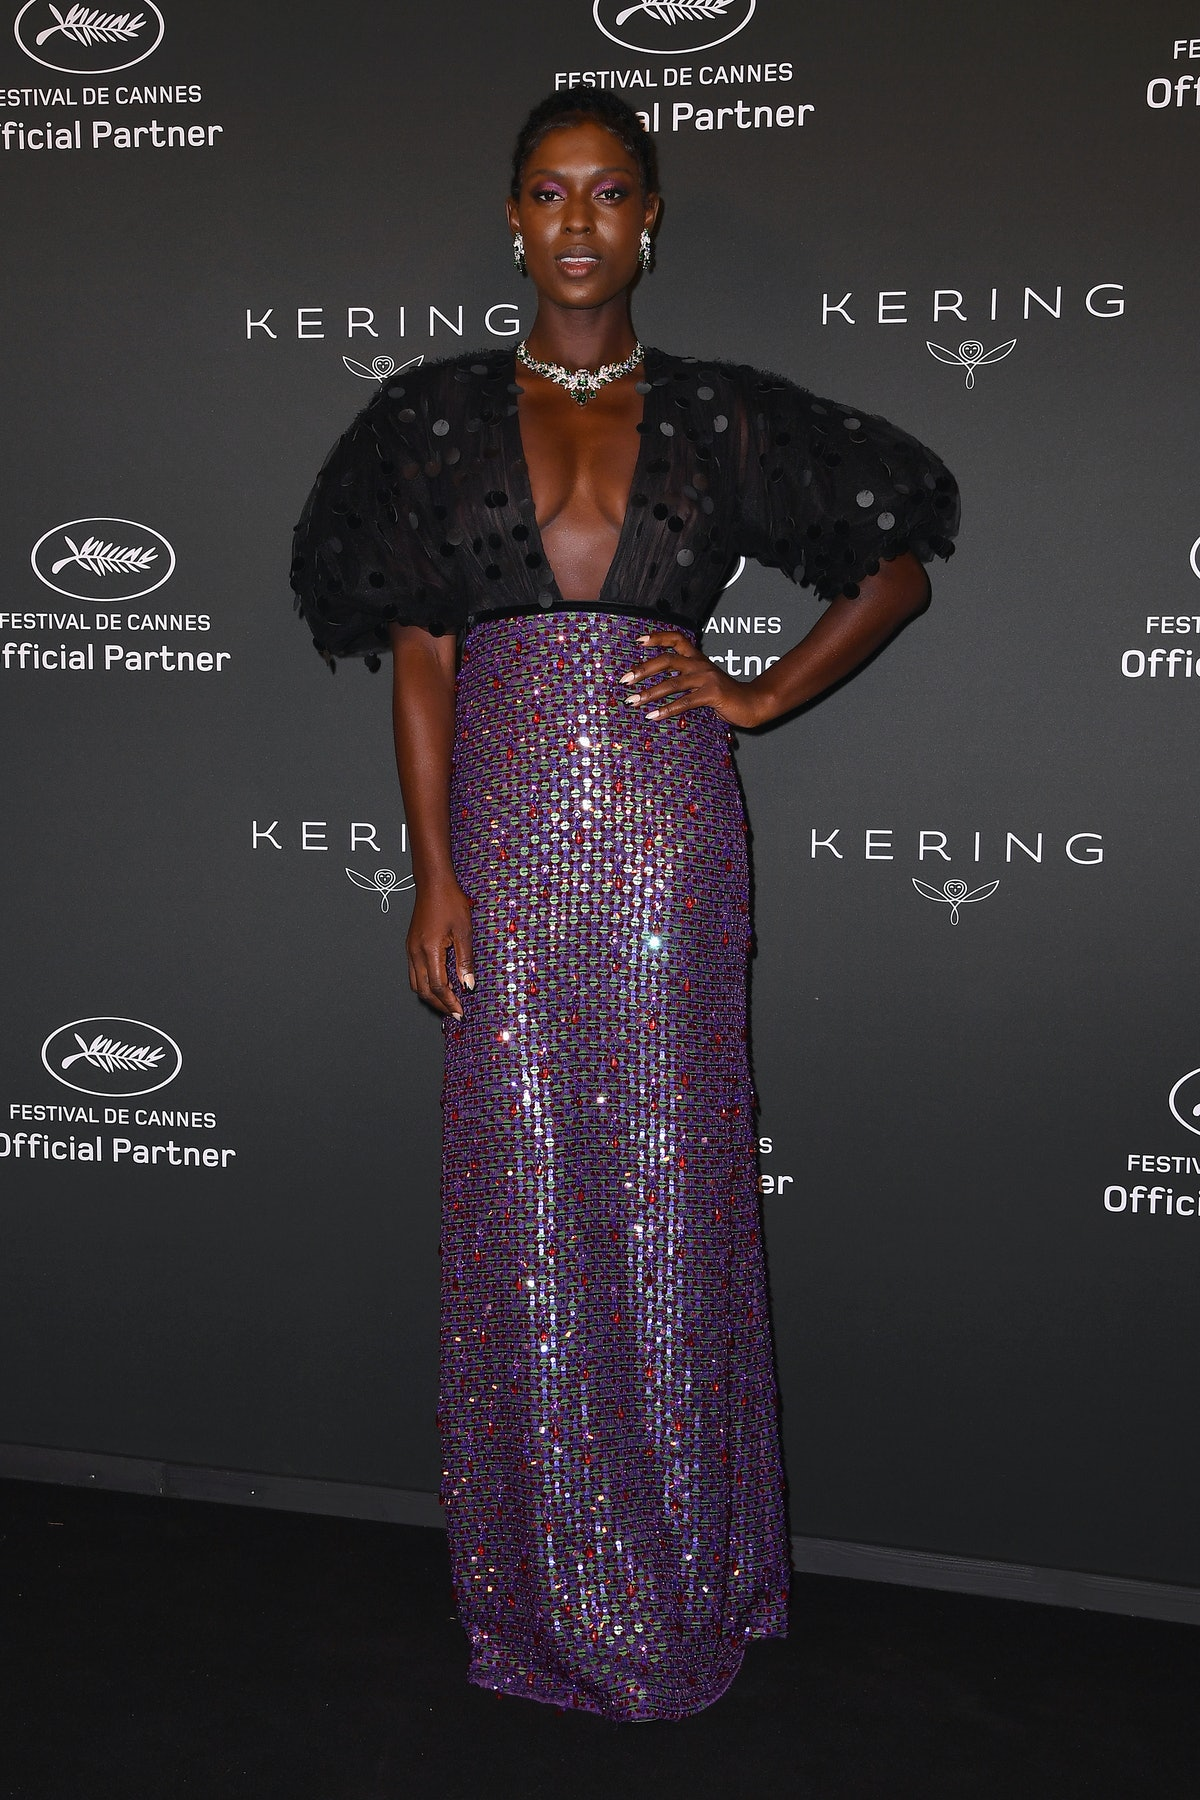 CANNES, FRANCE - JULY 11: Jodie Turner-Smith attends the Kering Women In Motion Awards during the 74th annual Cannes Film Festival on July 11, 2021 in Cannes, France. (Photo by Stephane Cardinale - Corbis/Corbis via Getty Images)